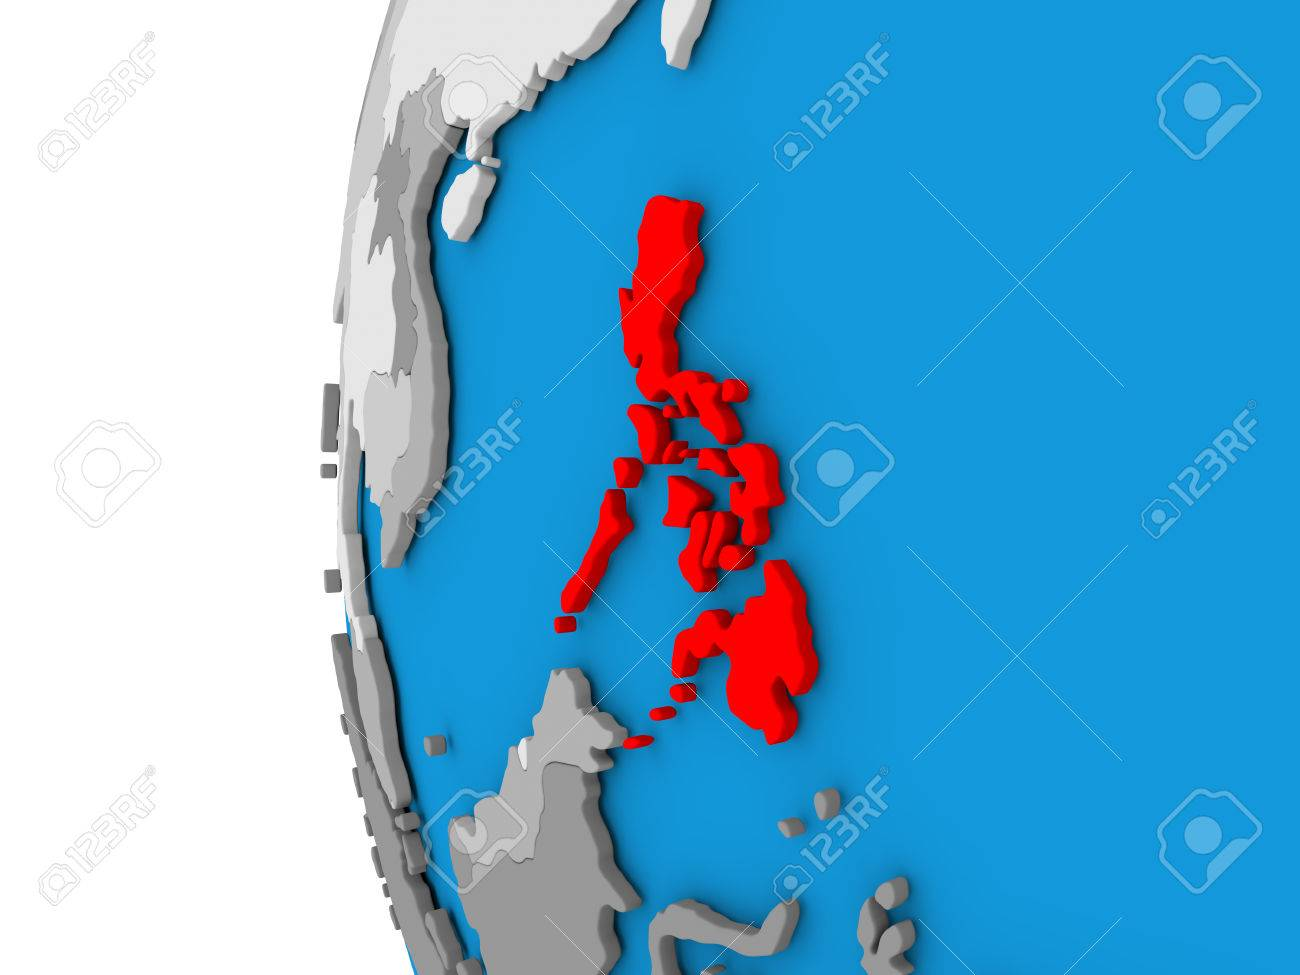 Simple Philippines Map.3d Map Of Philippines Focused In Red On Simple Globe 3d